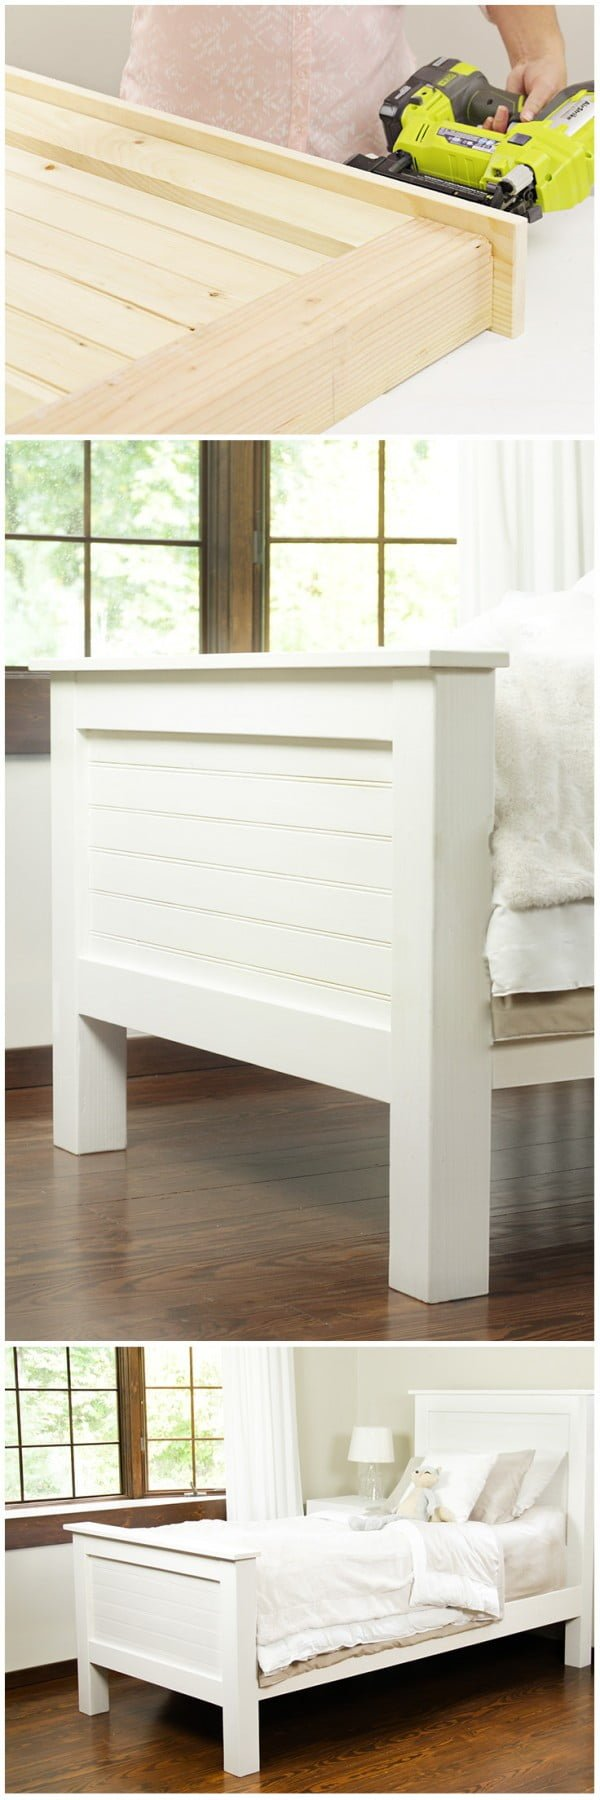 Check out how to build a DIY bed frame from tongue and groove boards @istandarddesign